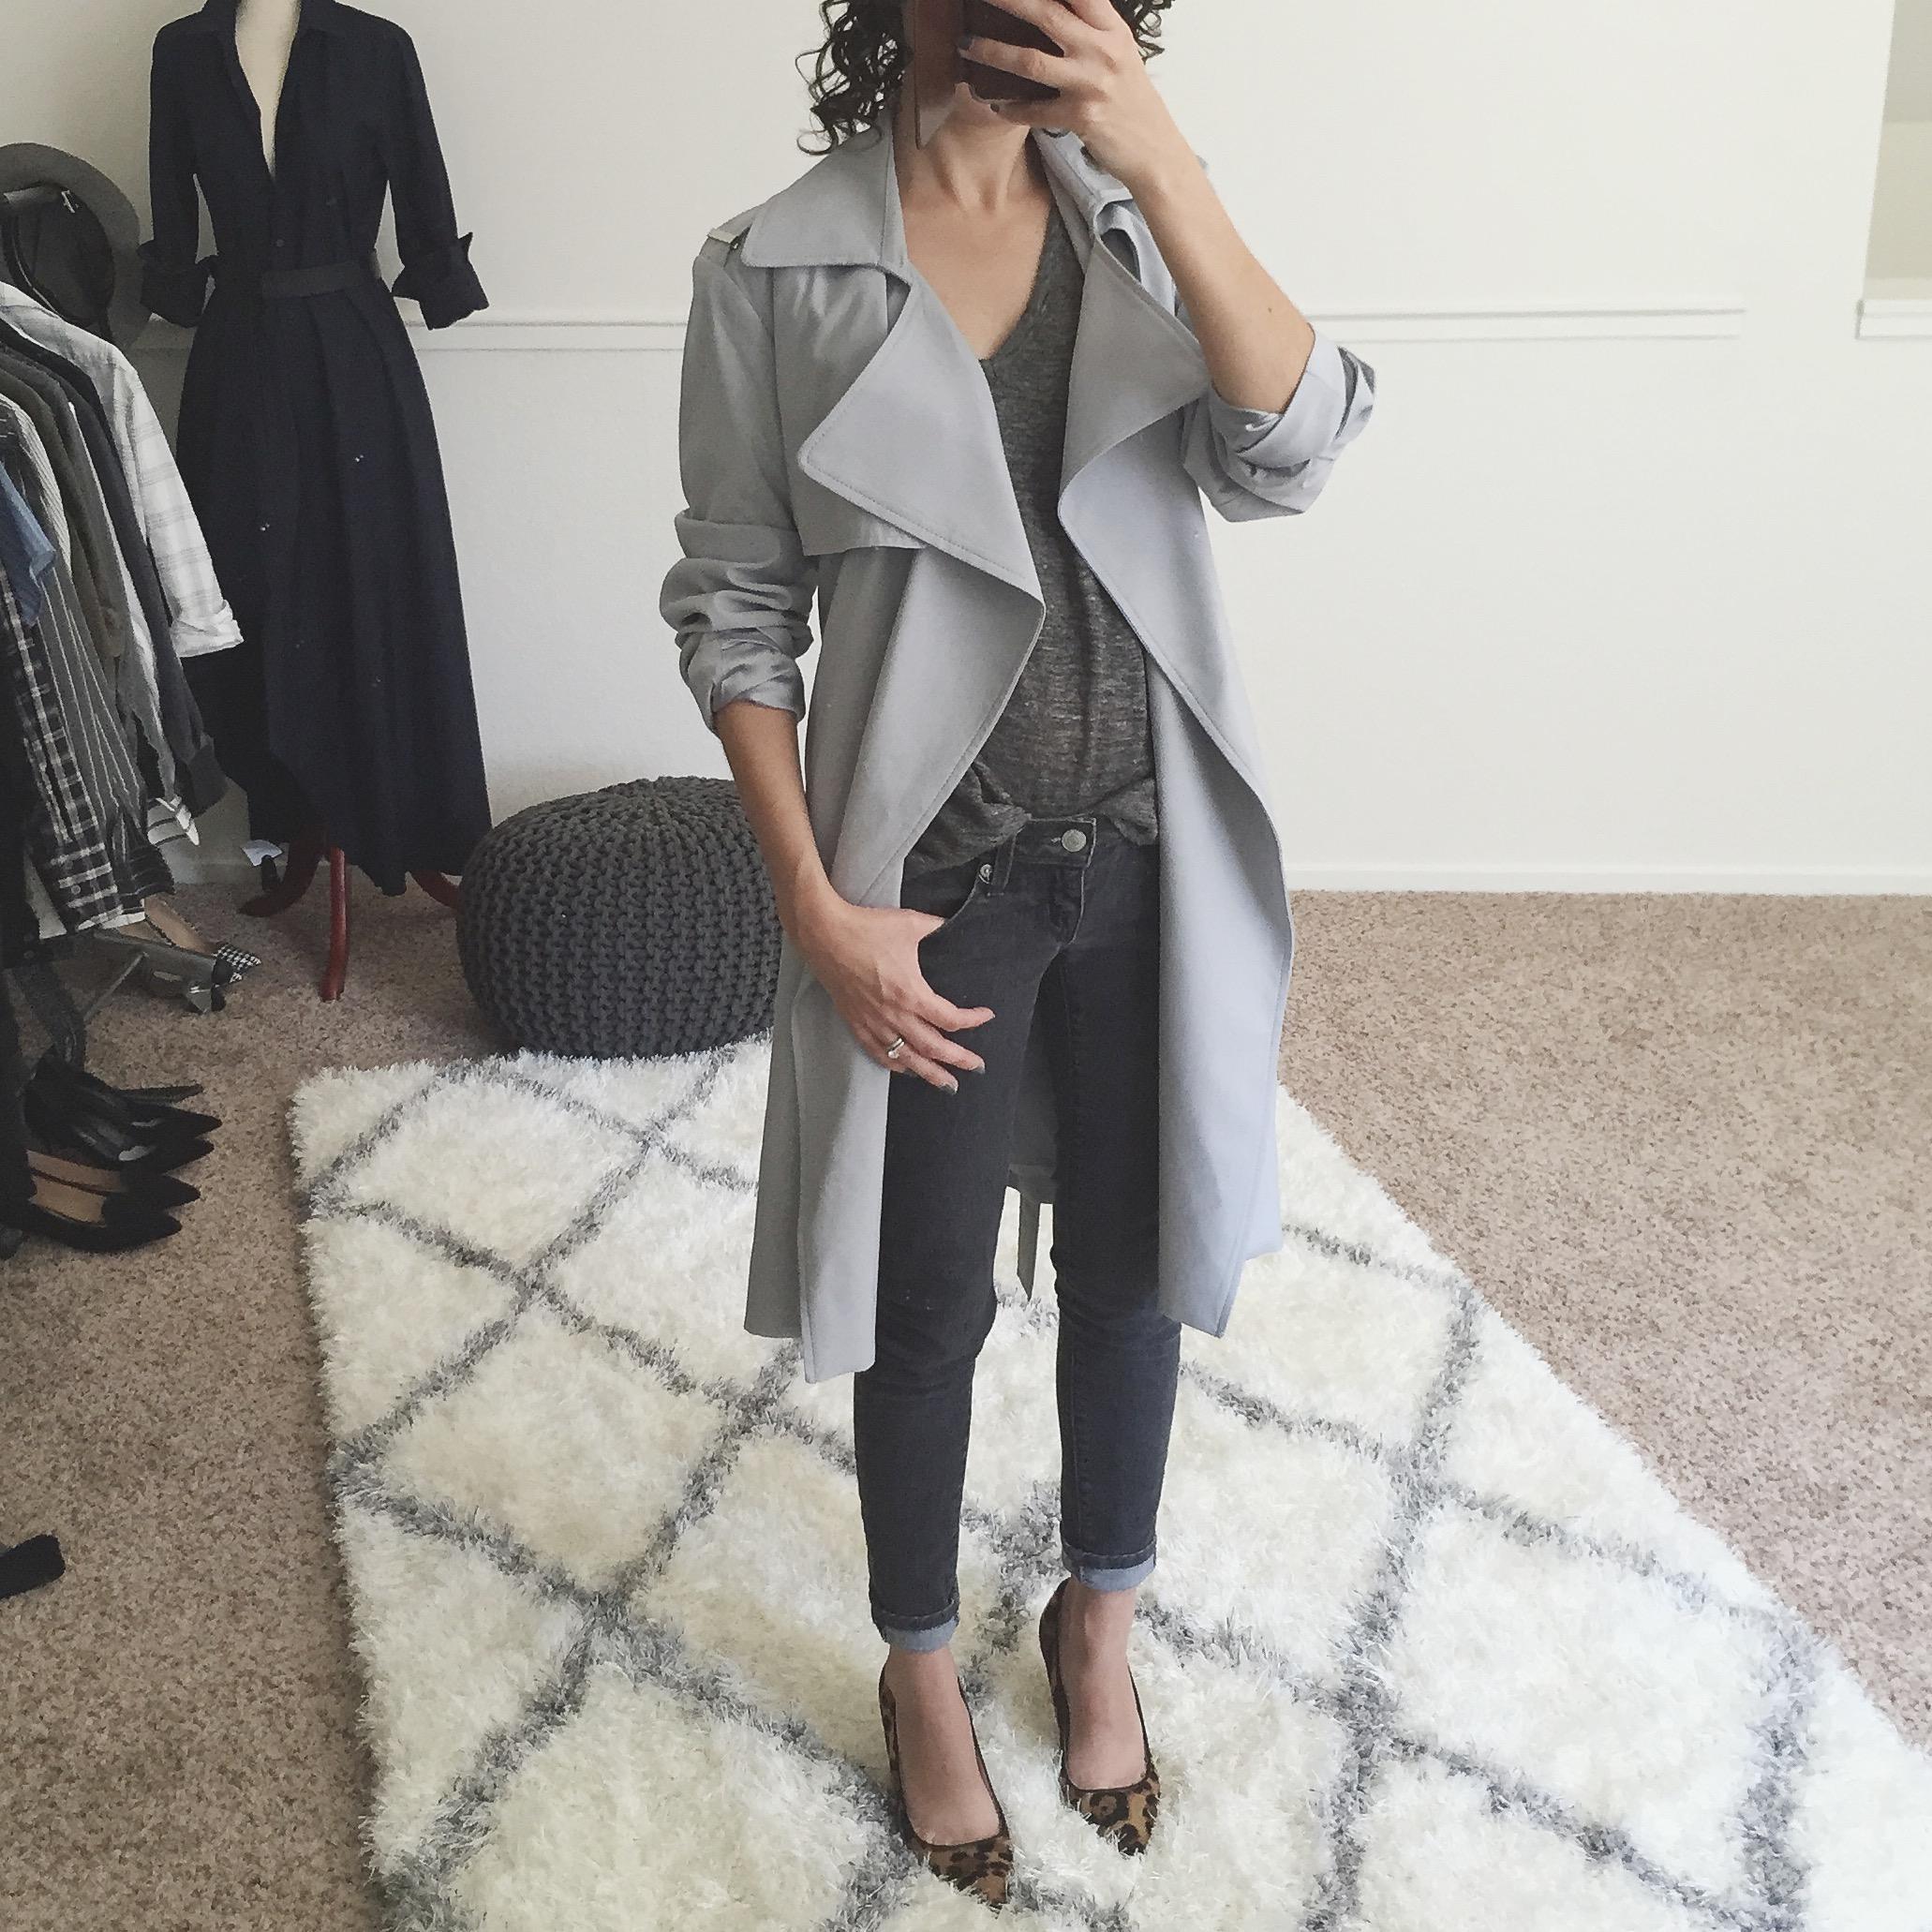 Alterations Needed Petite Fashion Style Tips